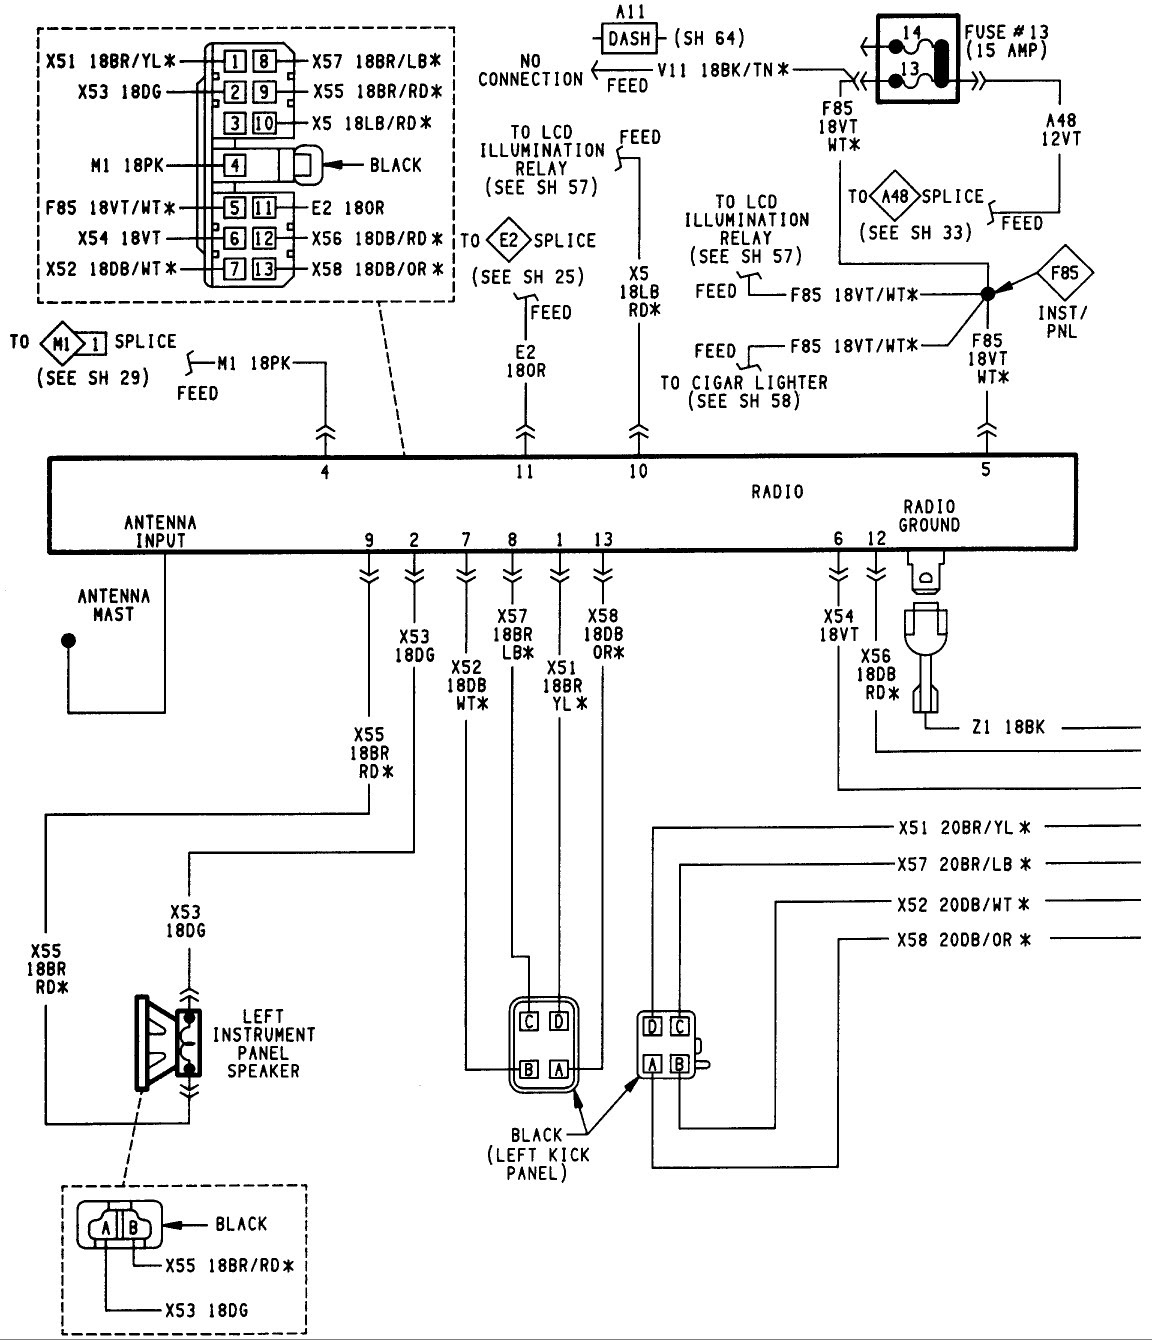 2005 Jeep Liberty Wiring Diagrams Wiring Diagram For 1999 Plymouth Voyager Begeboy Wiring Diagram Source